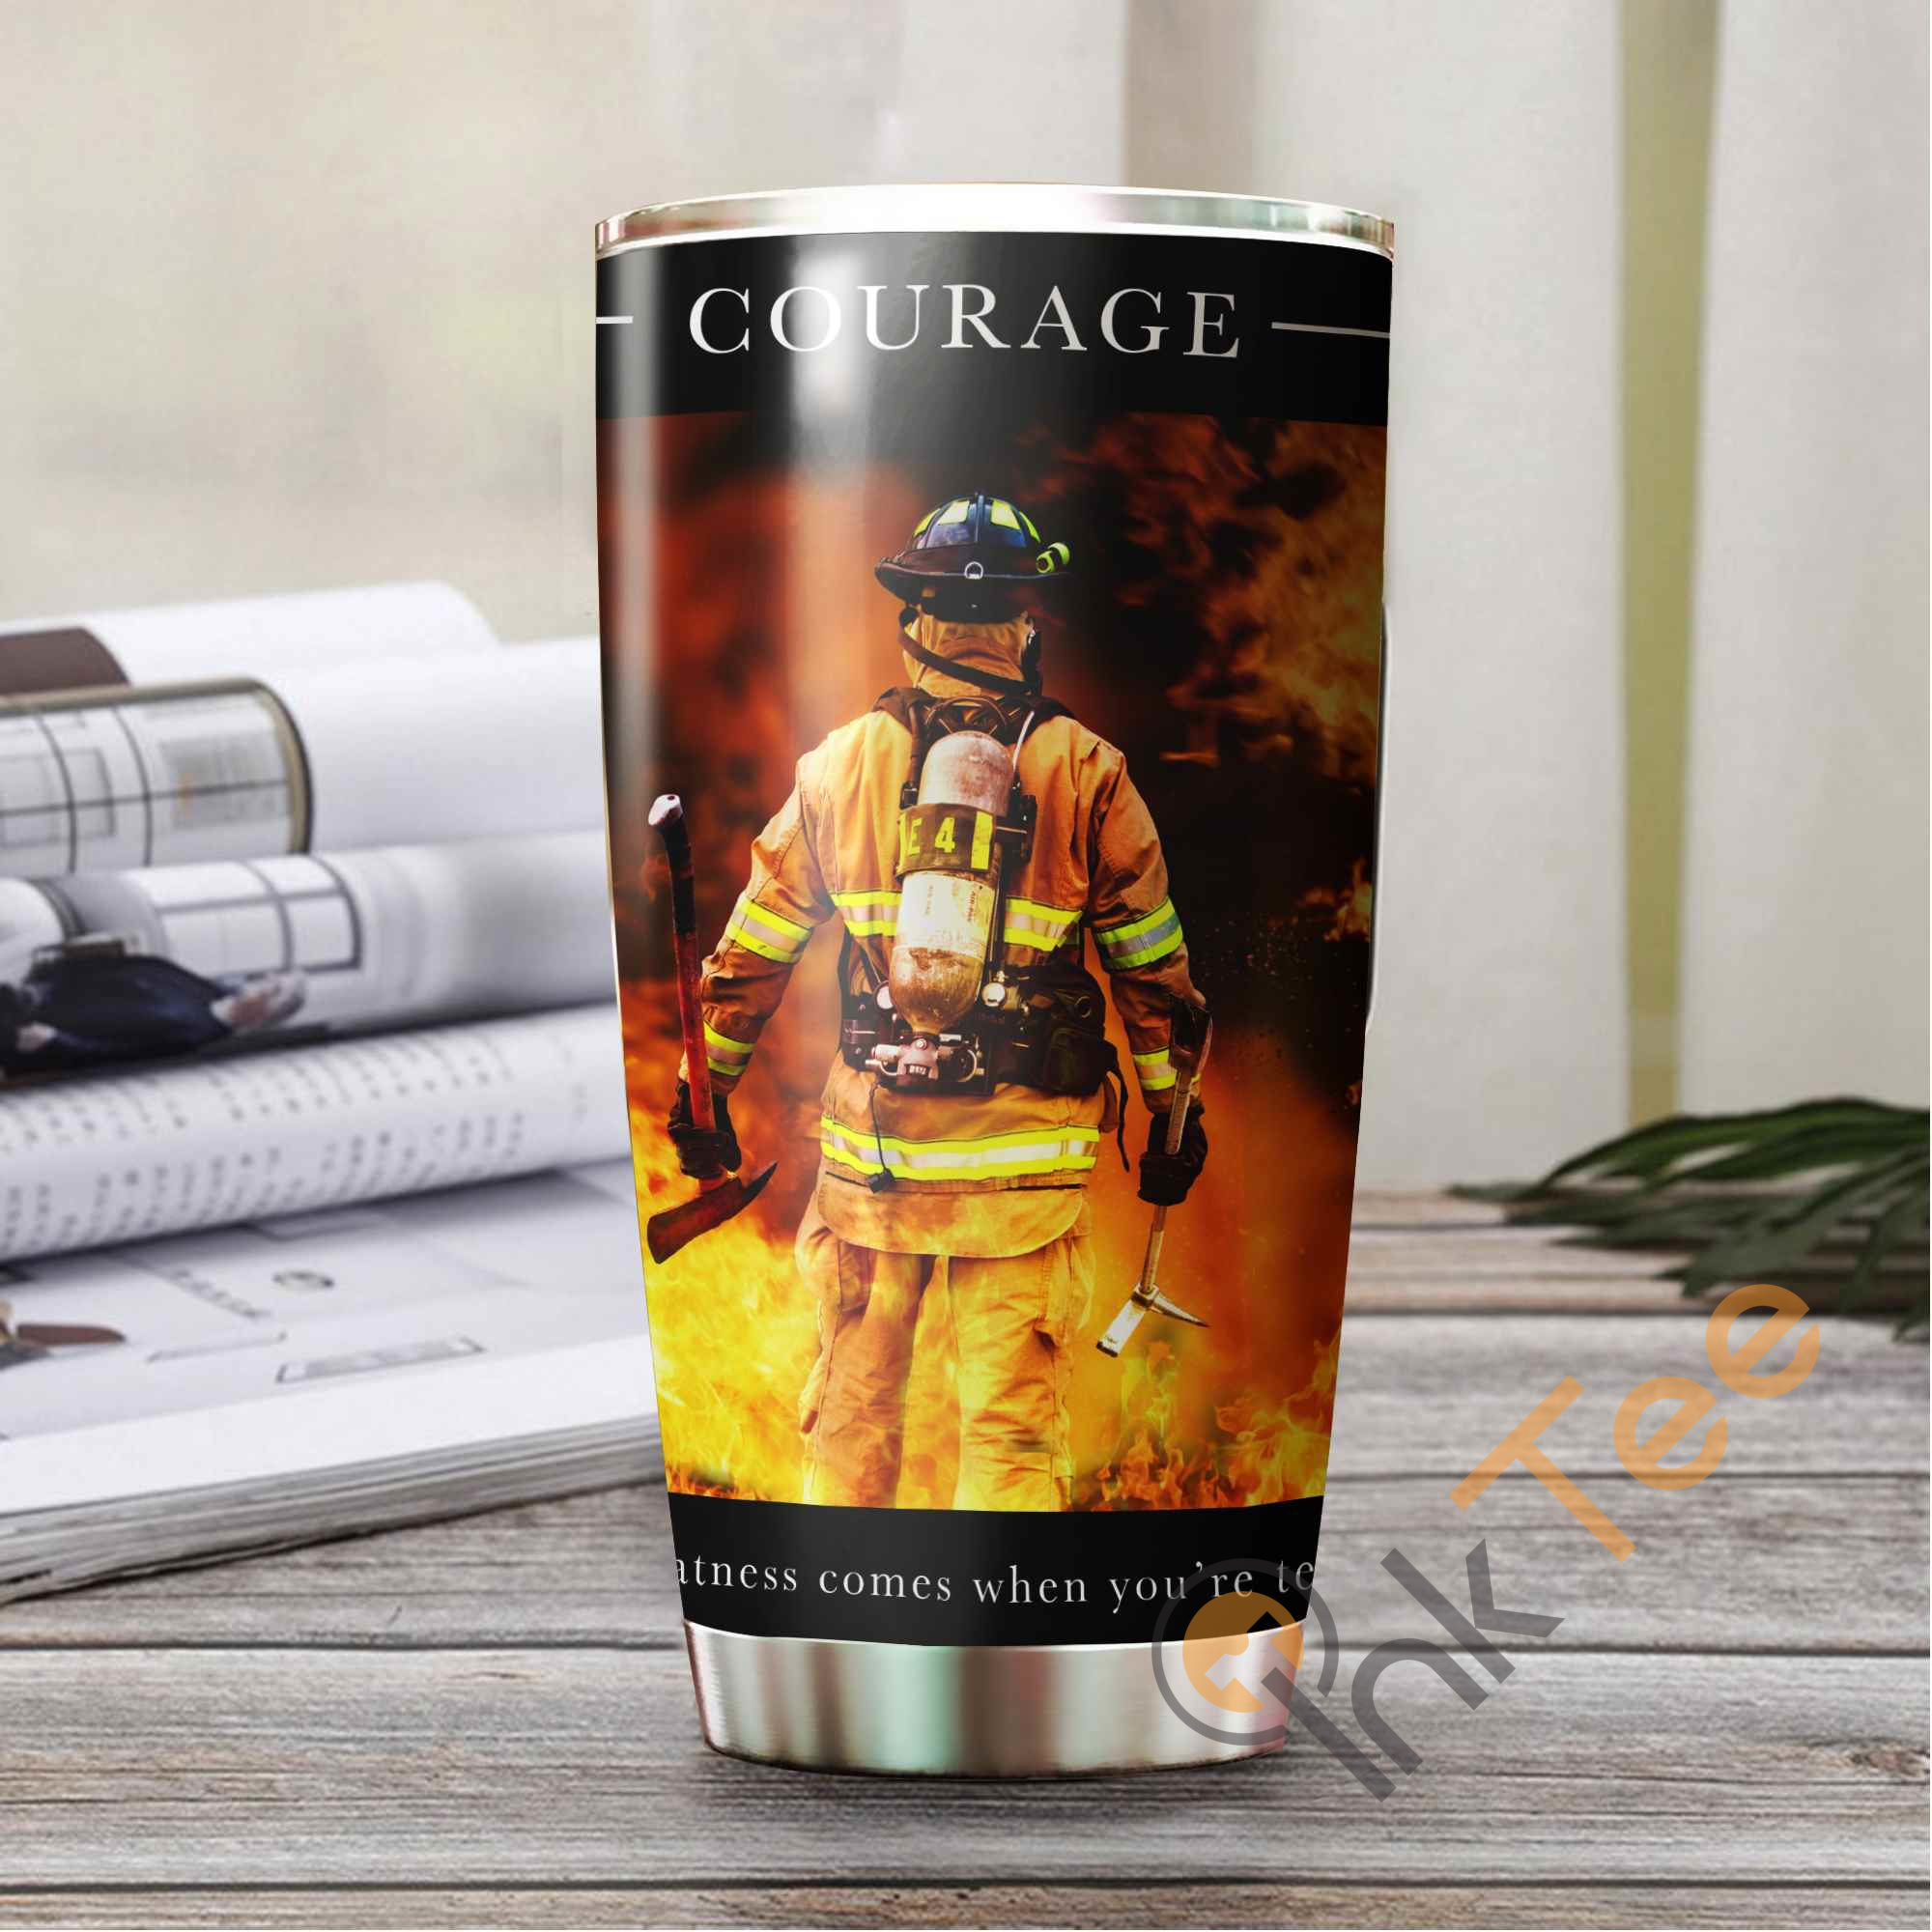 Firefighter's Courage Amazon Best Seller Sku 2561 Stainless Steel Tumbler